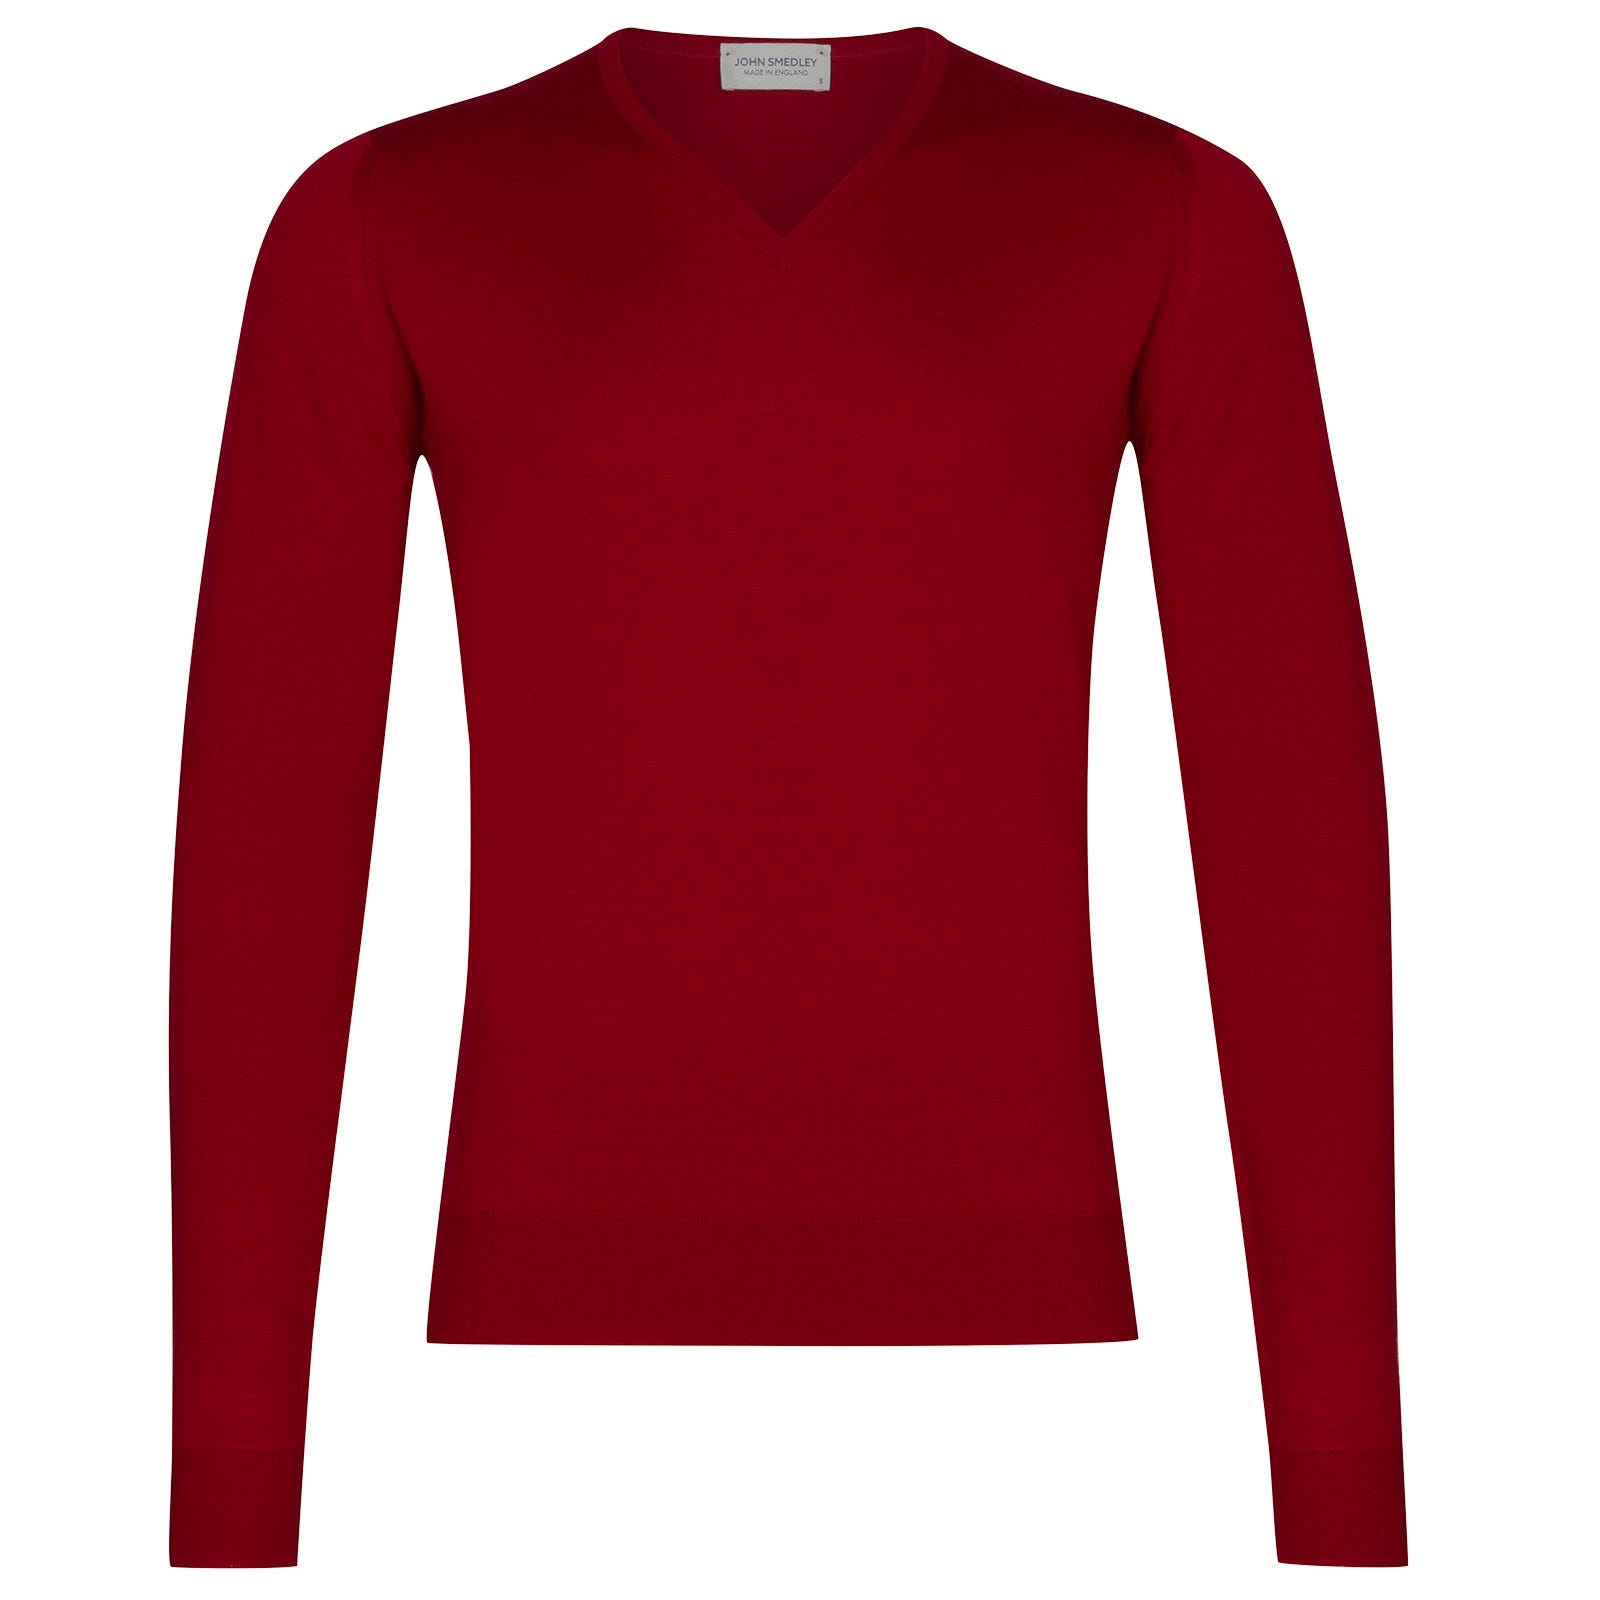 John Smedley Blenheim Merino Wool Pullover in Crimson Forest-XL